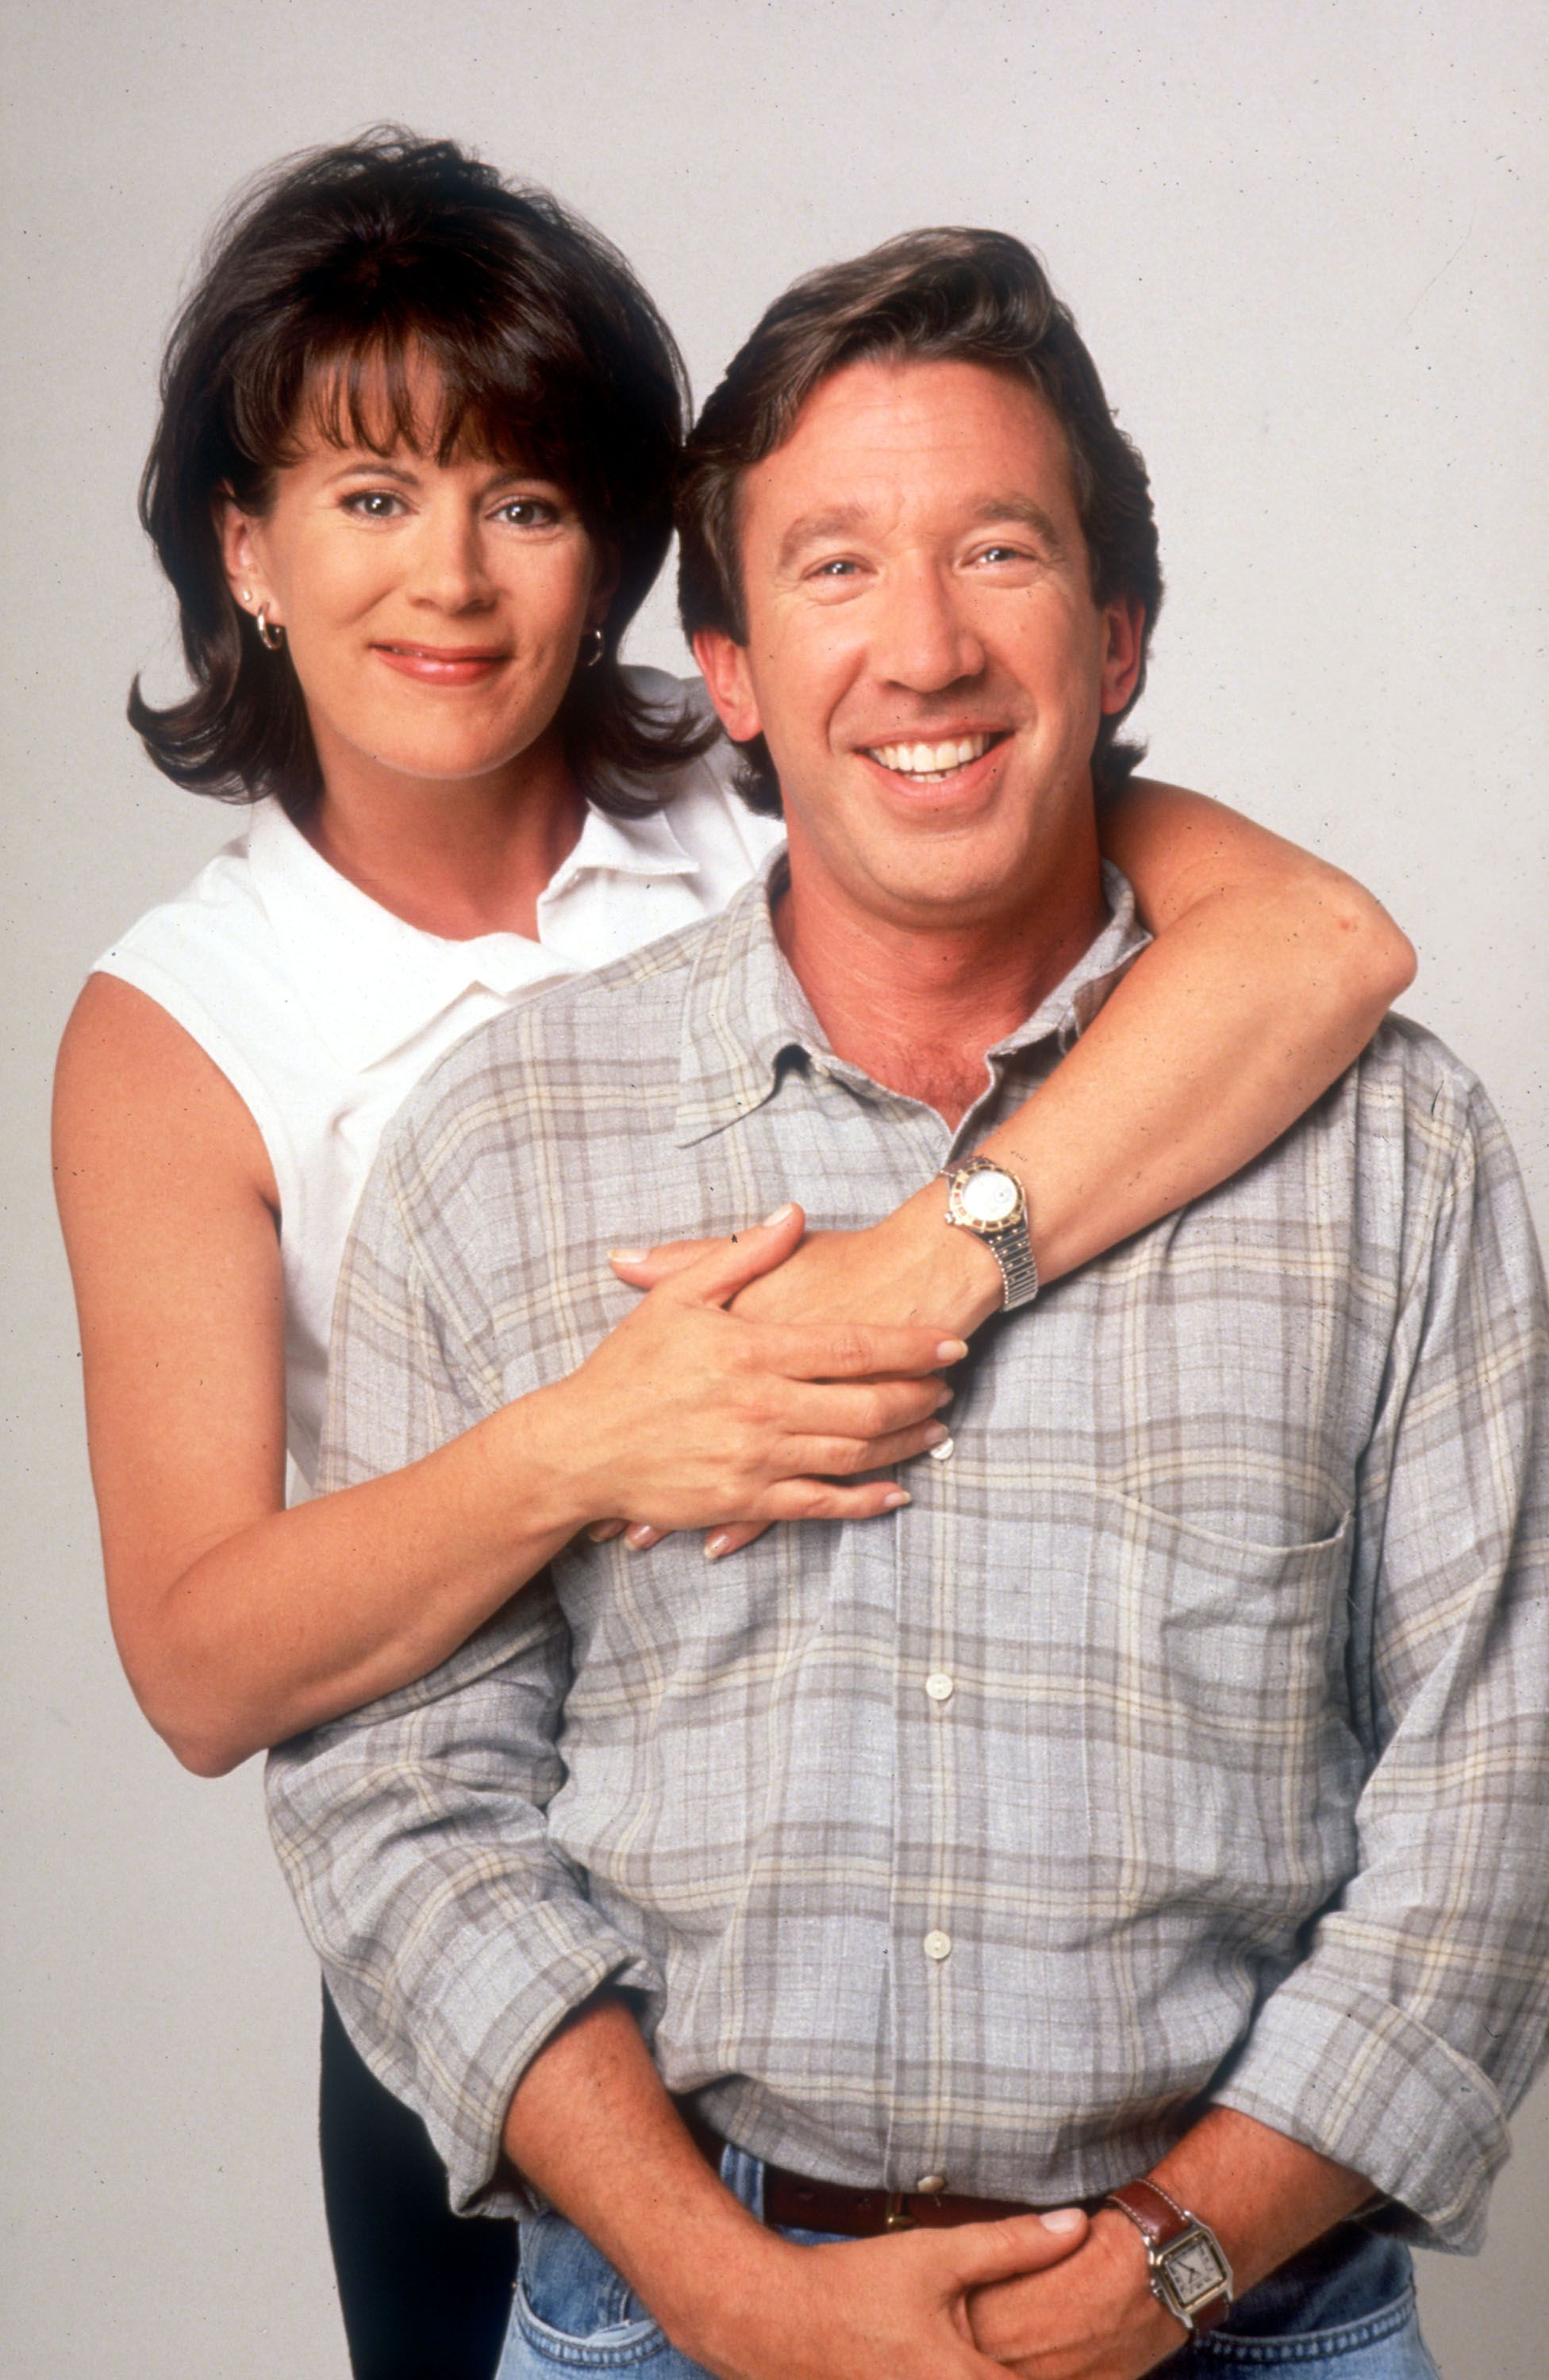 tim & jill - home-improvement-tv-show photo | great couples (acting